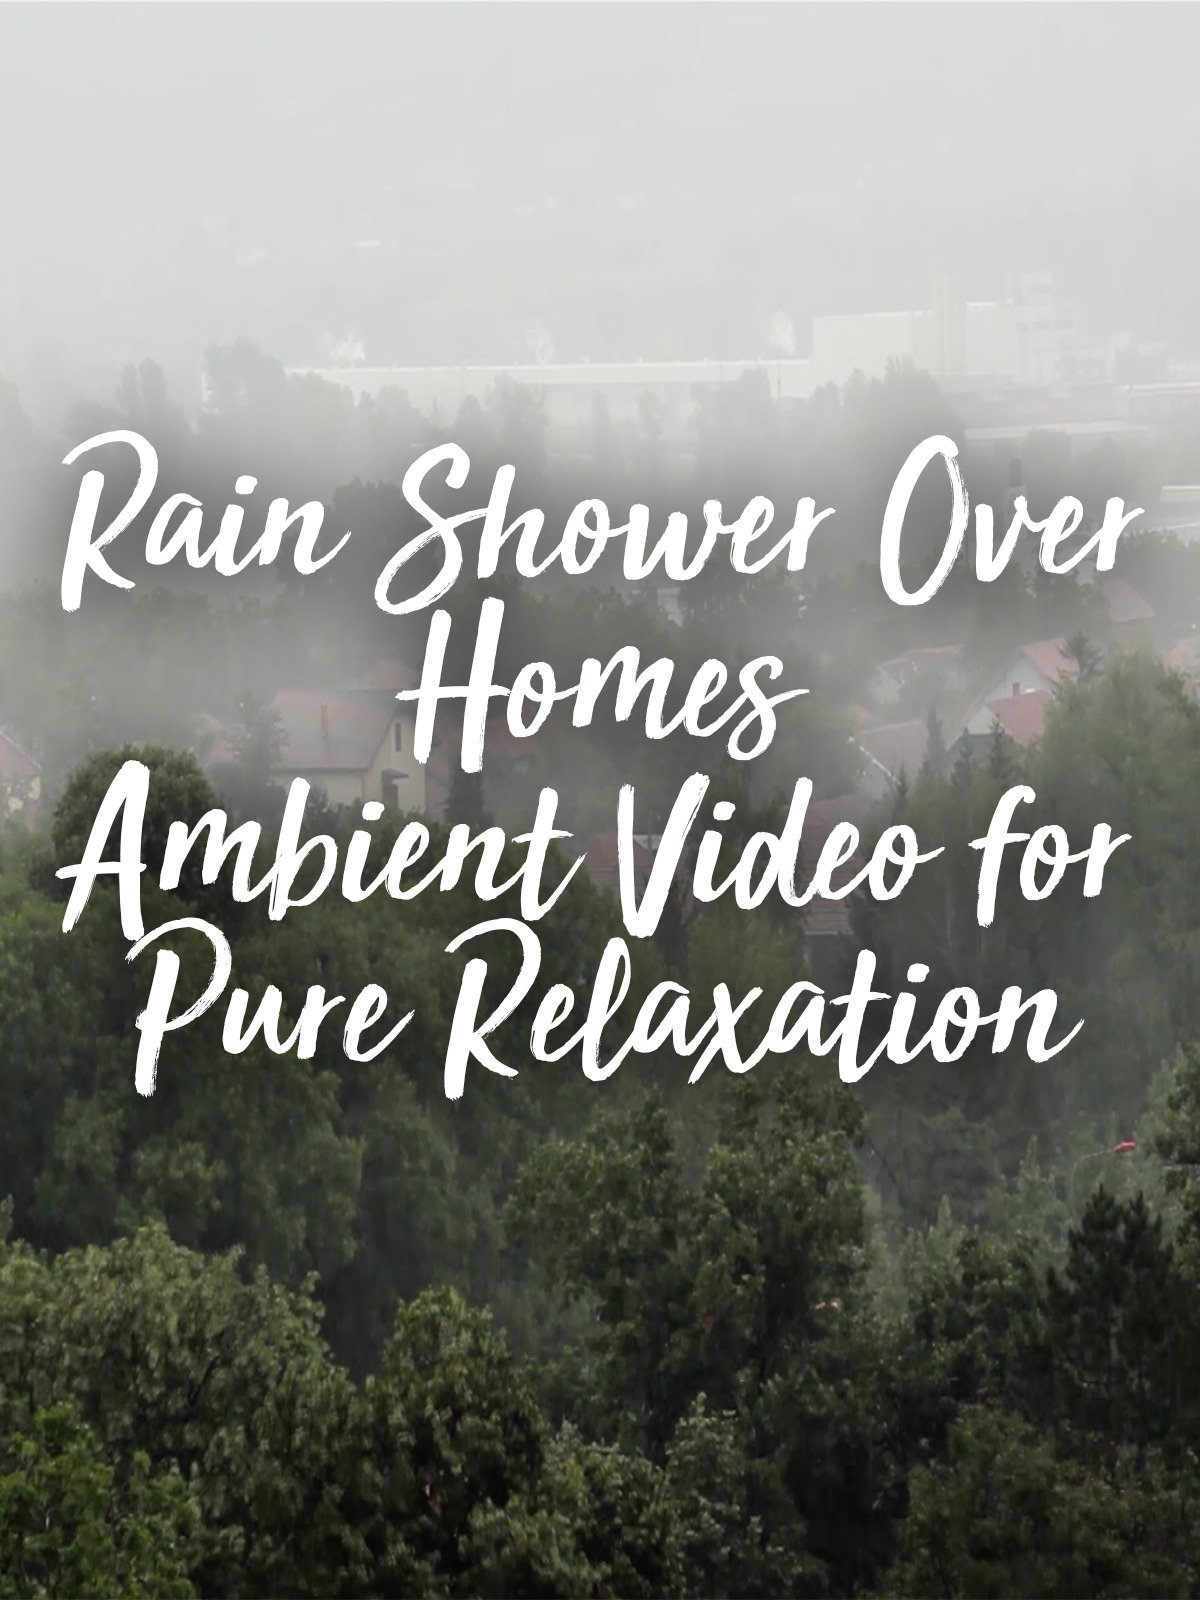 Rain Shower Over Homes Ambient Video for Pure Relaxation